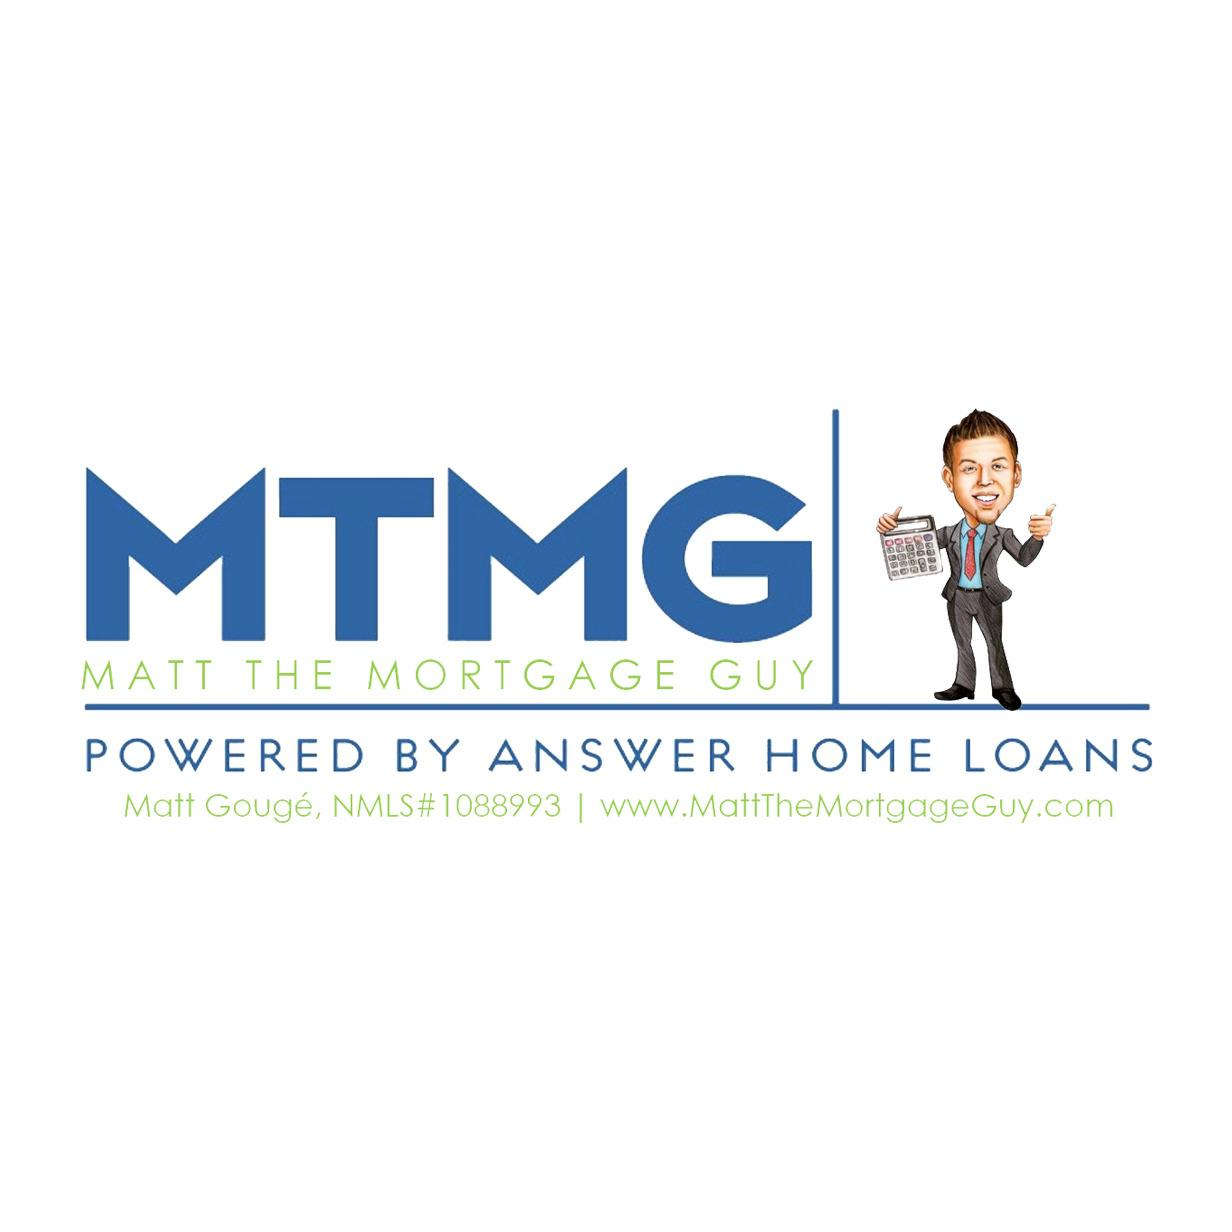 Matt the Mortgage Guy